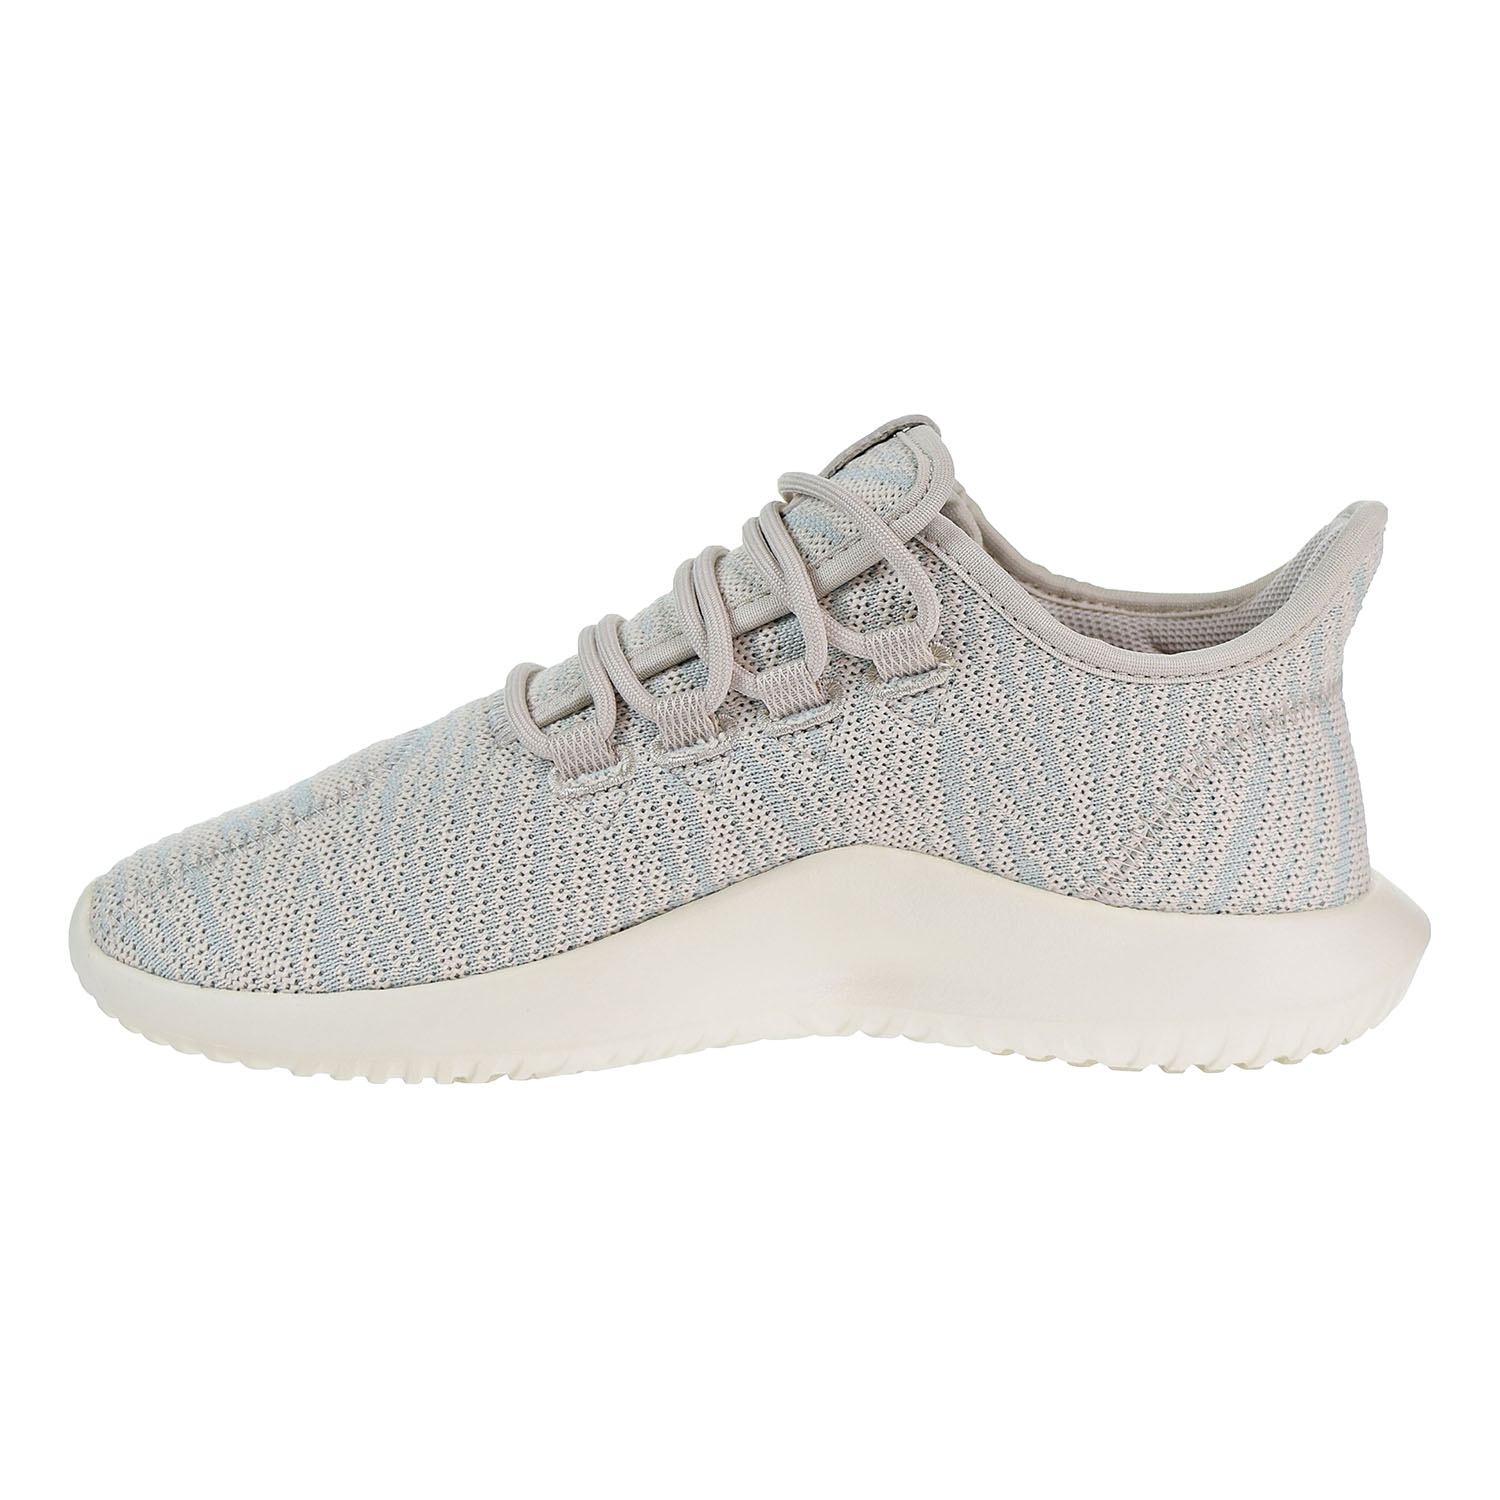 Adidas Tubular Shadow Women s Shoes Clear Brown Ash Green Off White cq2463 3d6f28147